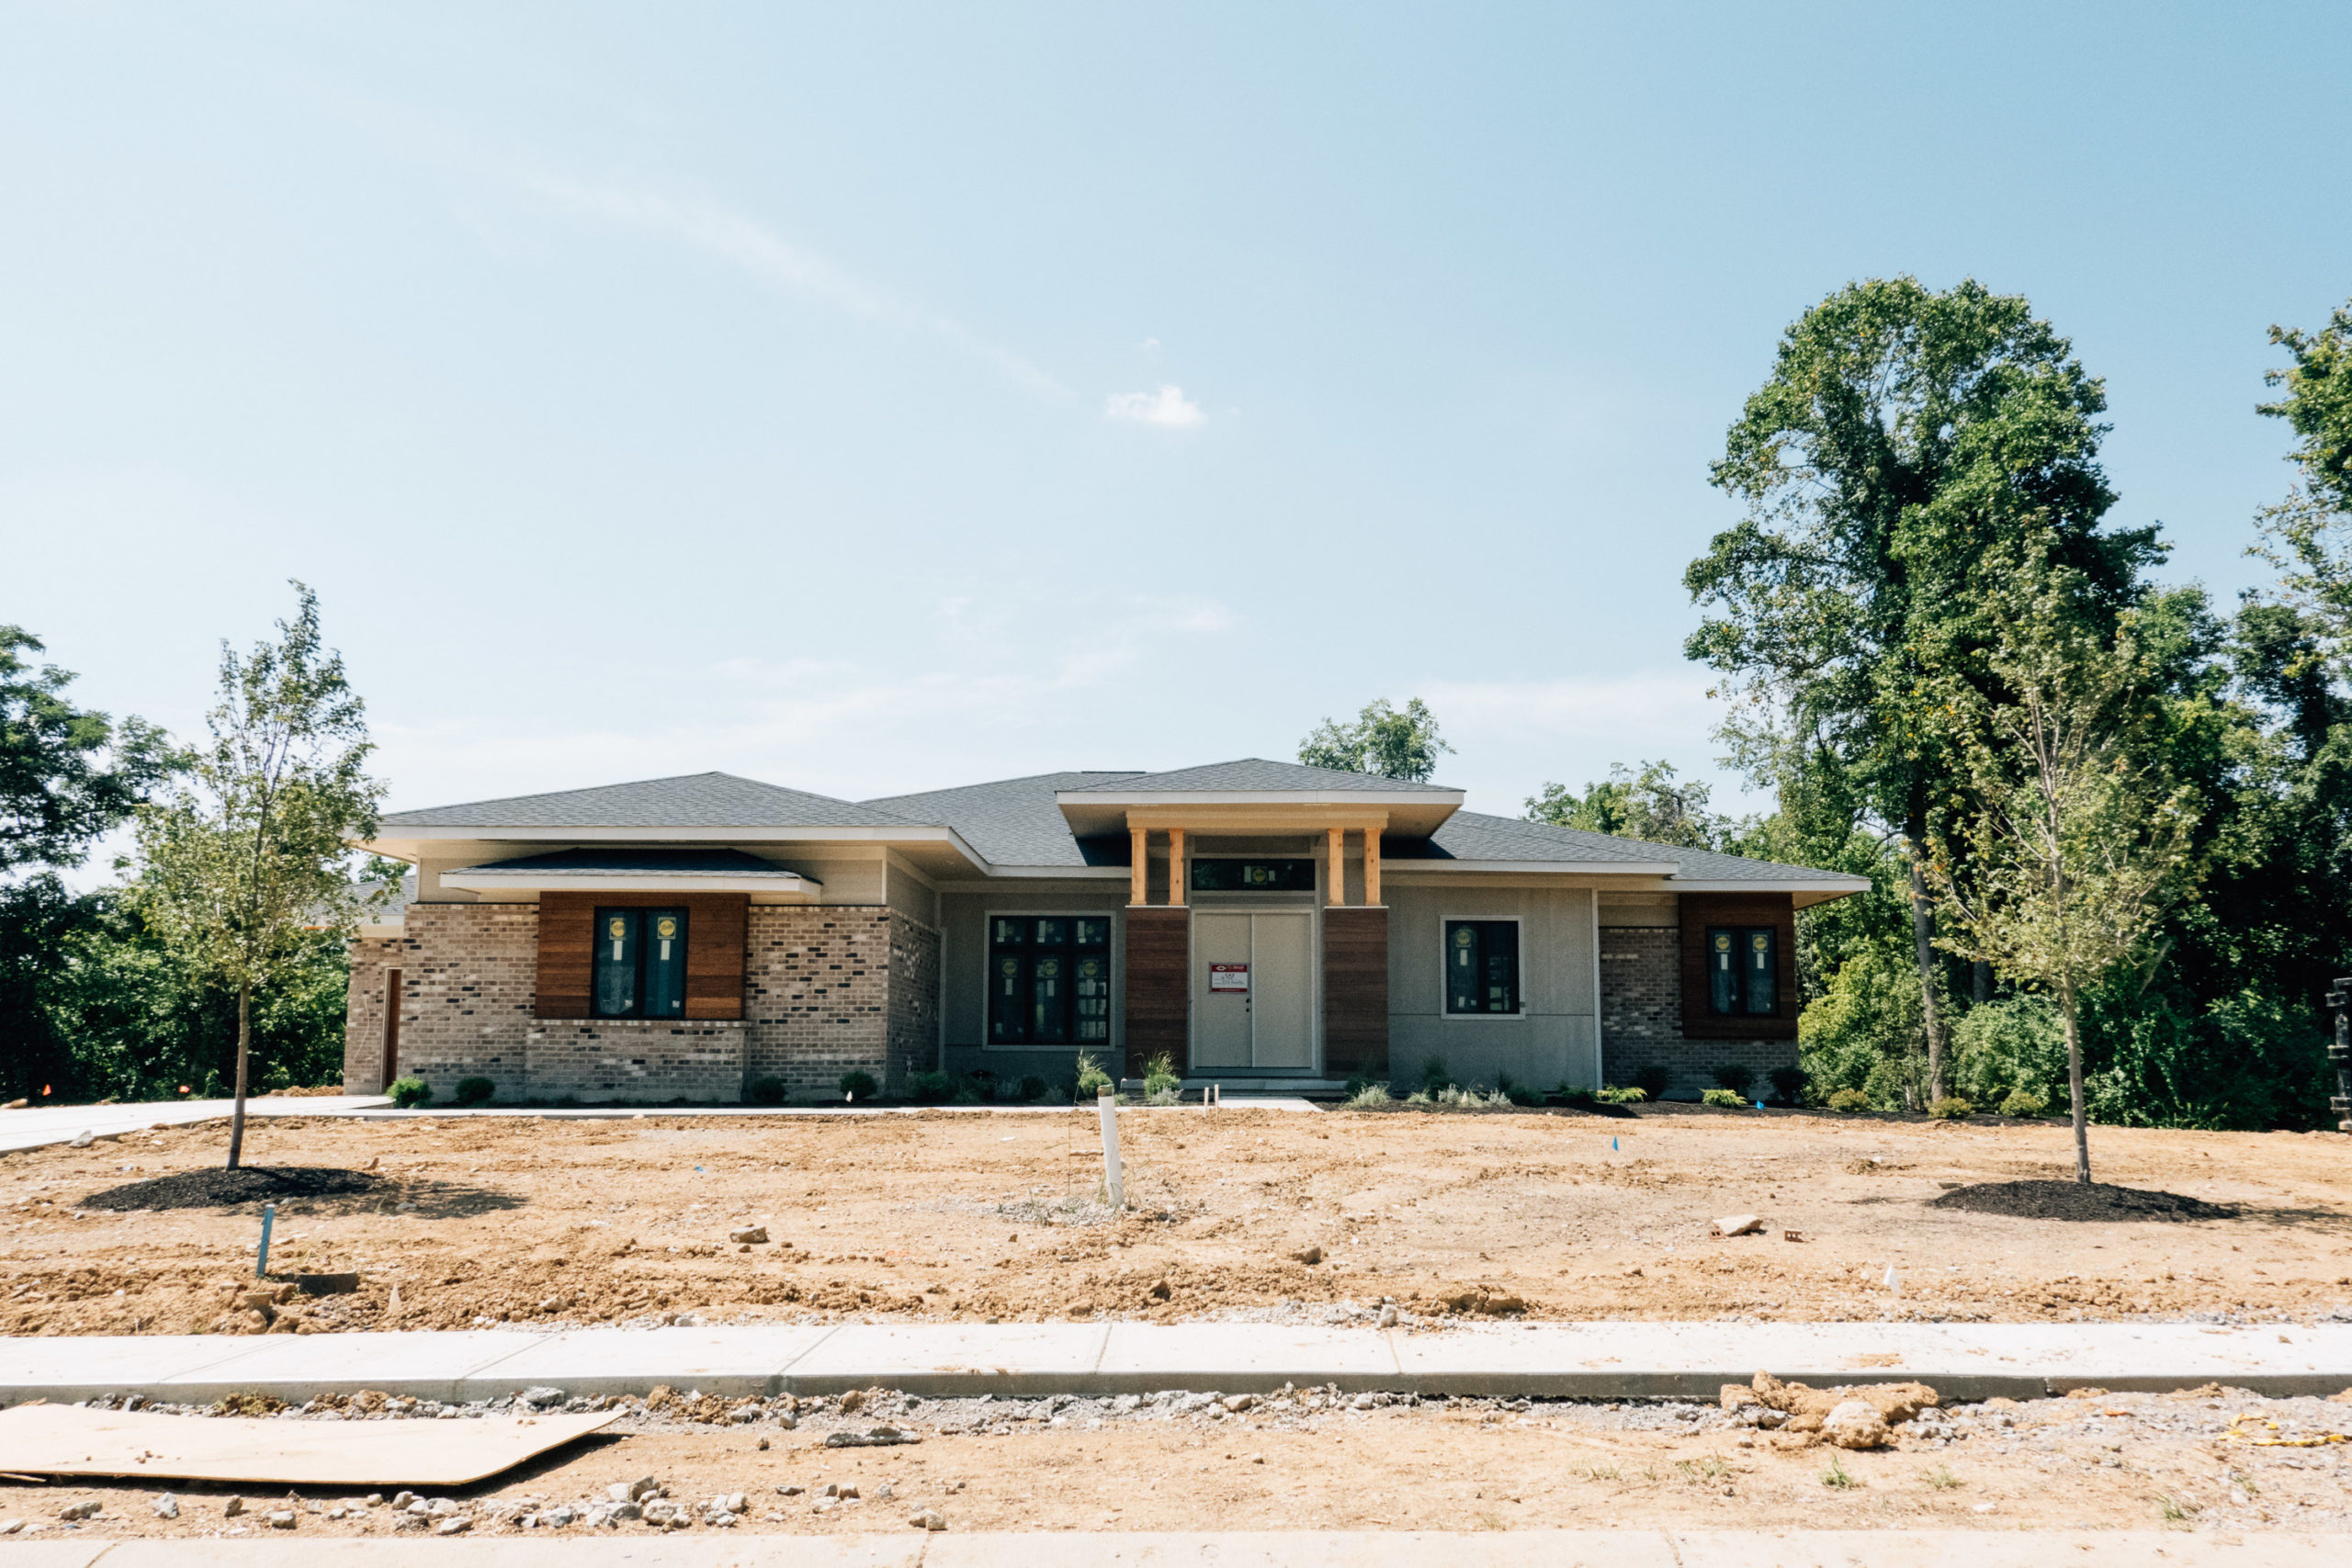 A large ranch house under construction